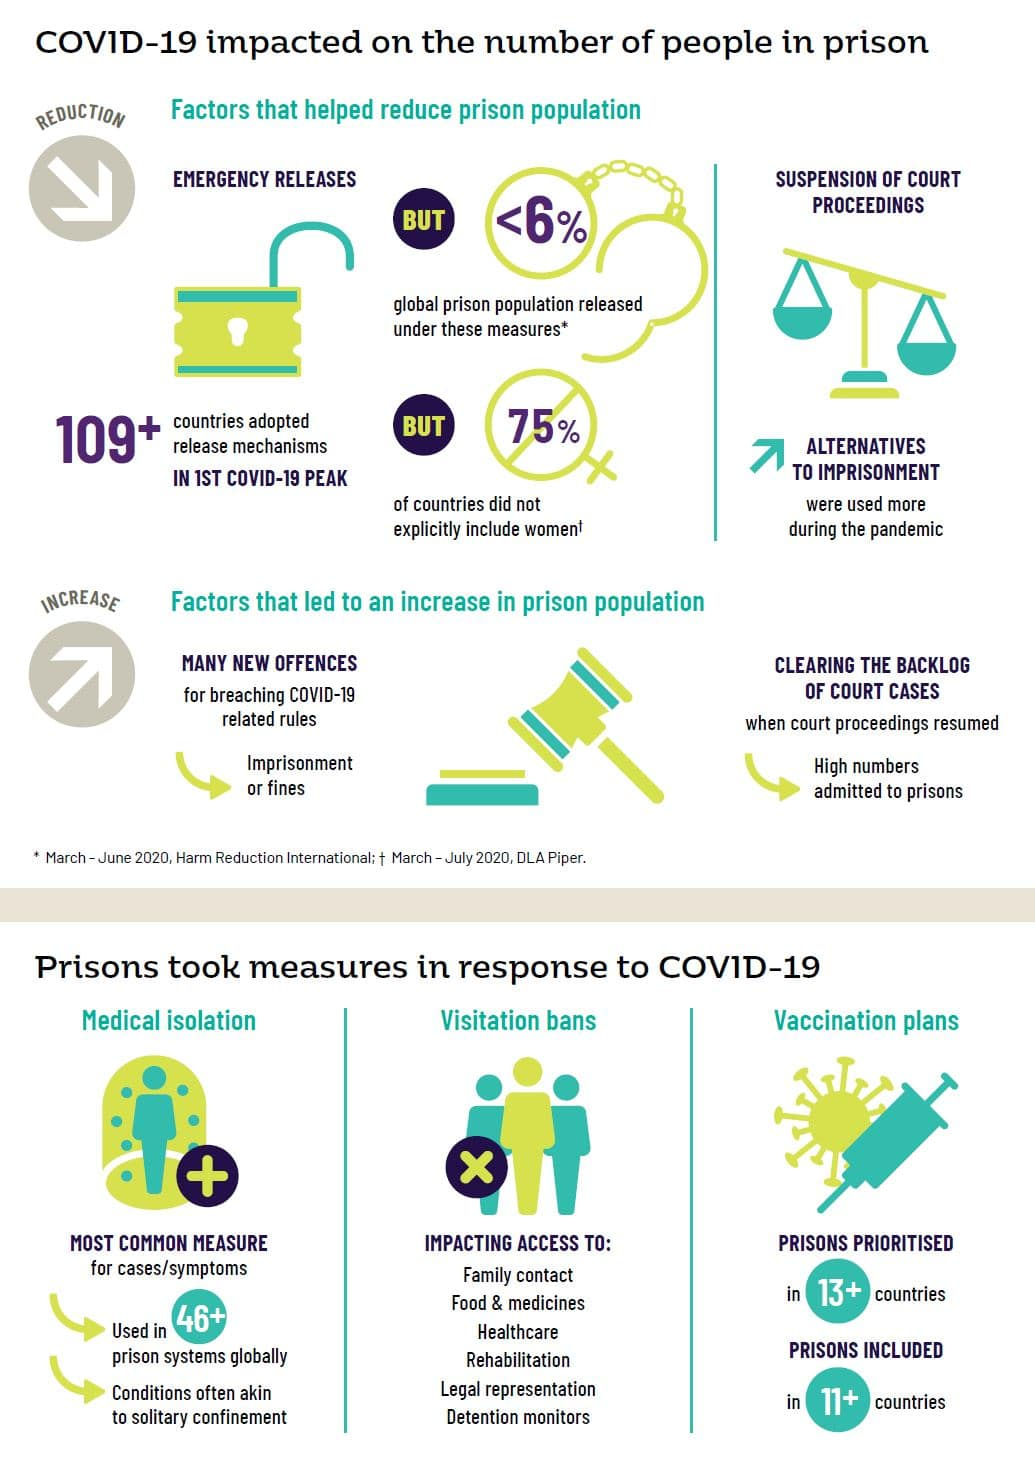 COVID19 impact on prisons